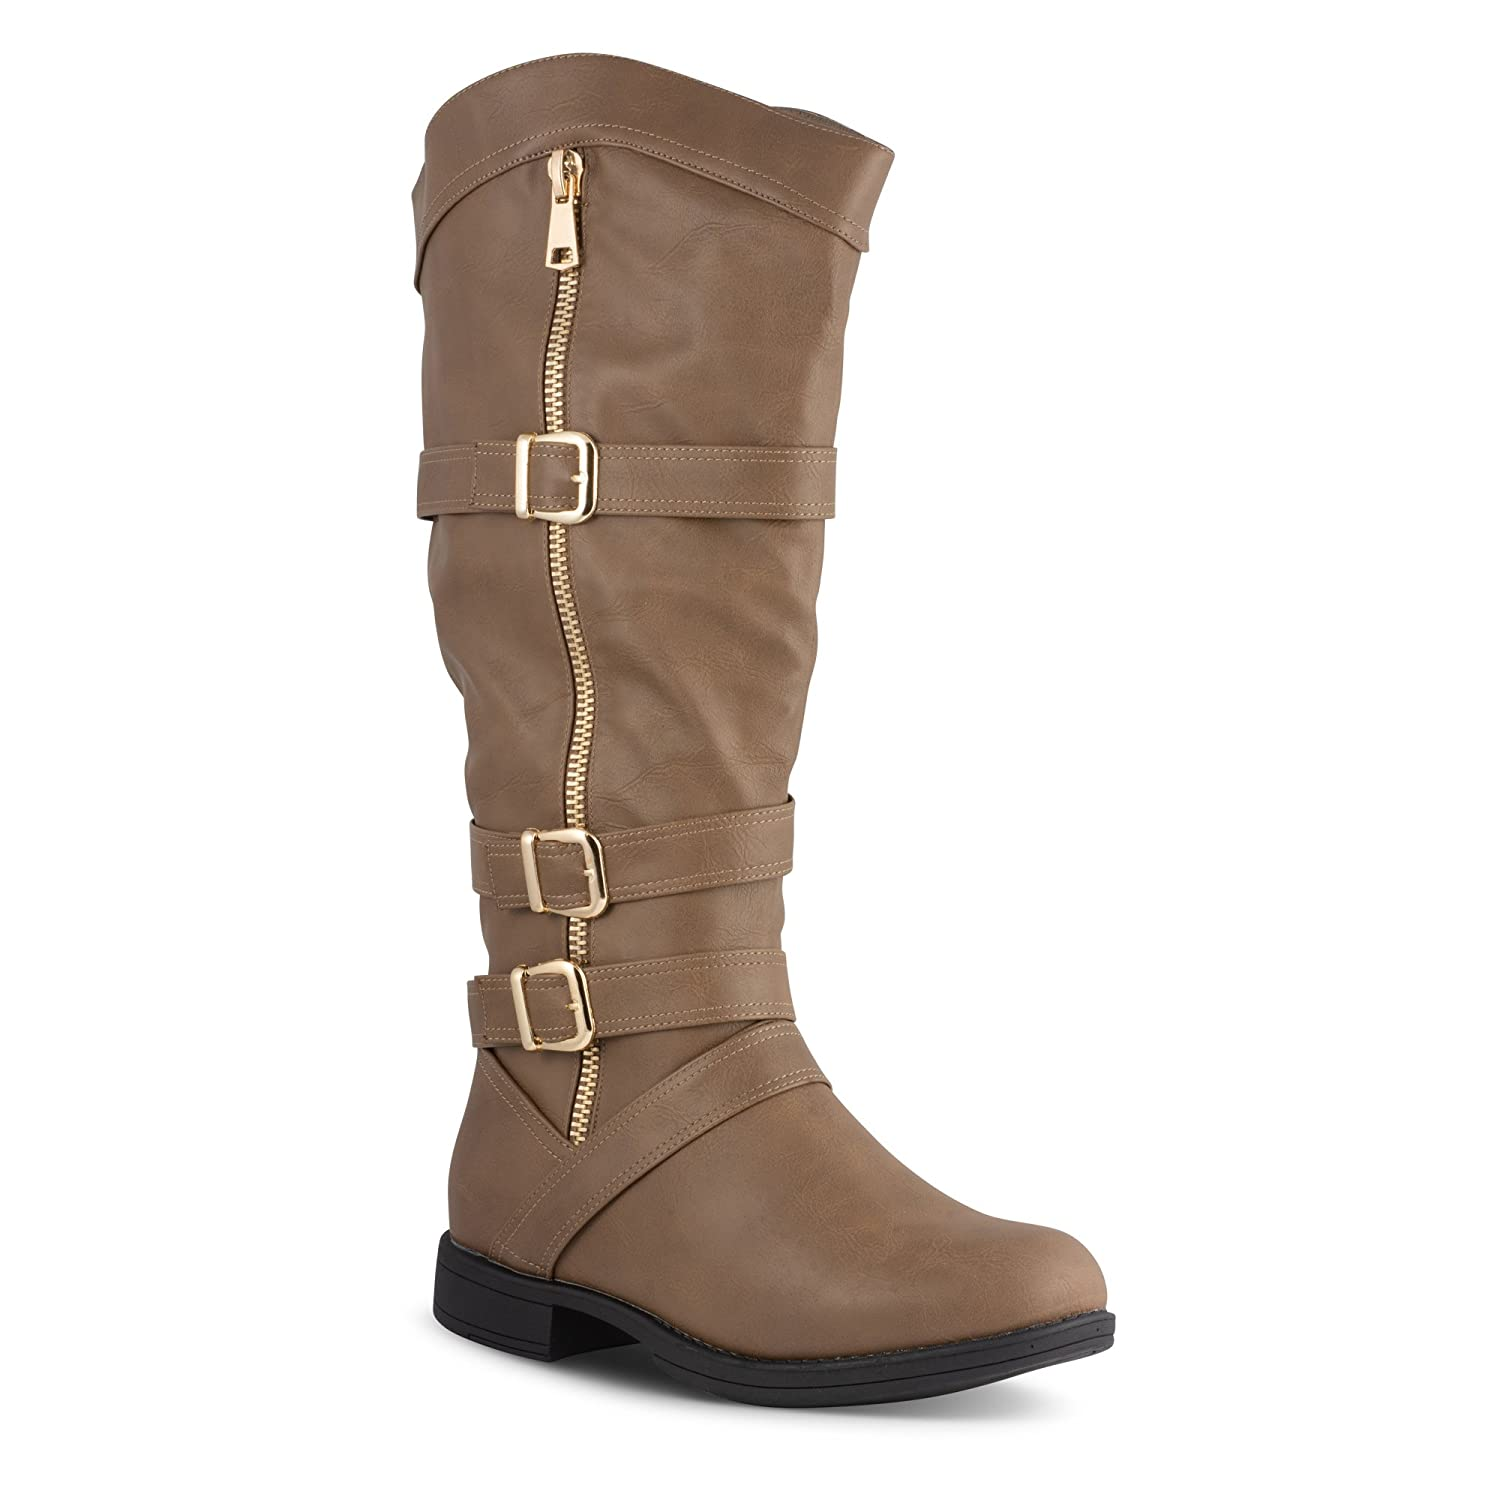 Twisted Women's AMIRA Wide Width/Wide Calf Faux Leather Knee-High Western Flat Riding Boot with Multi Buckle Straps B00M3FMU2Q 9 C/D US|Taupe